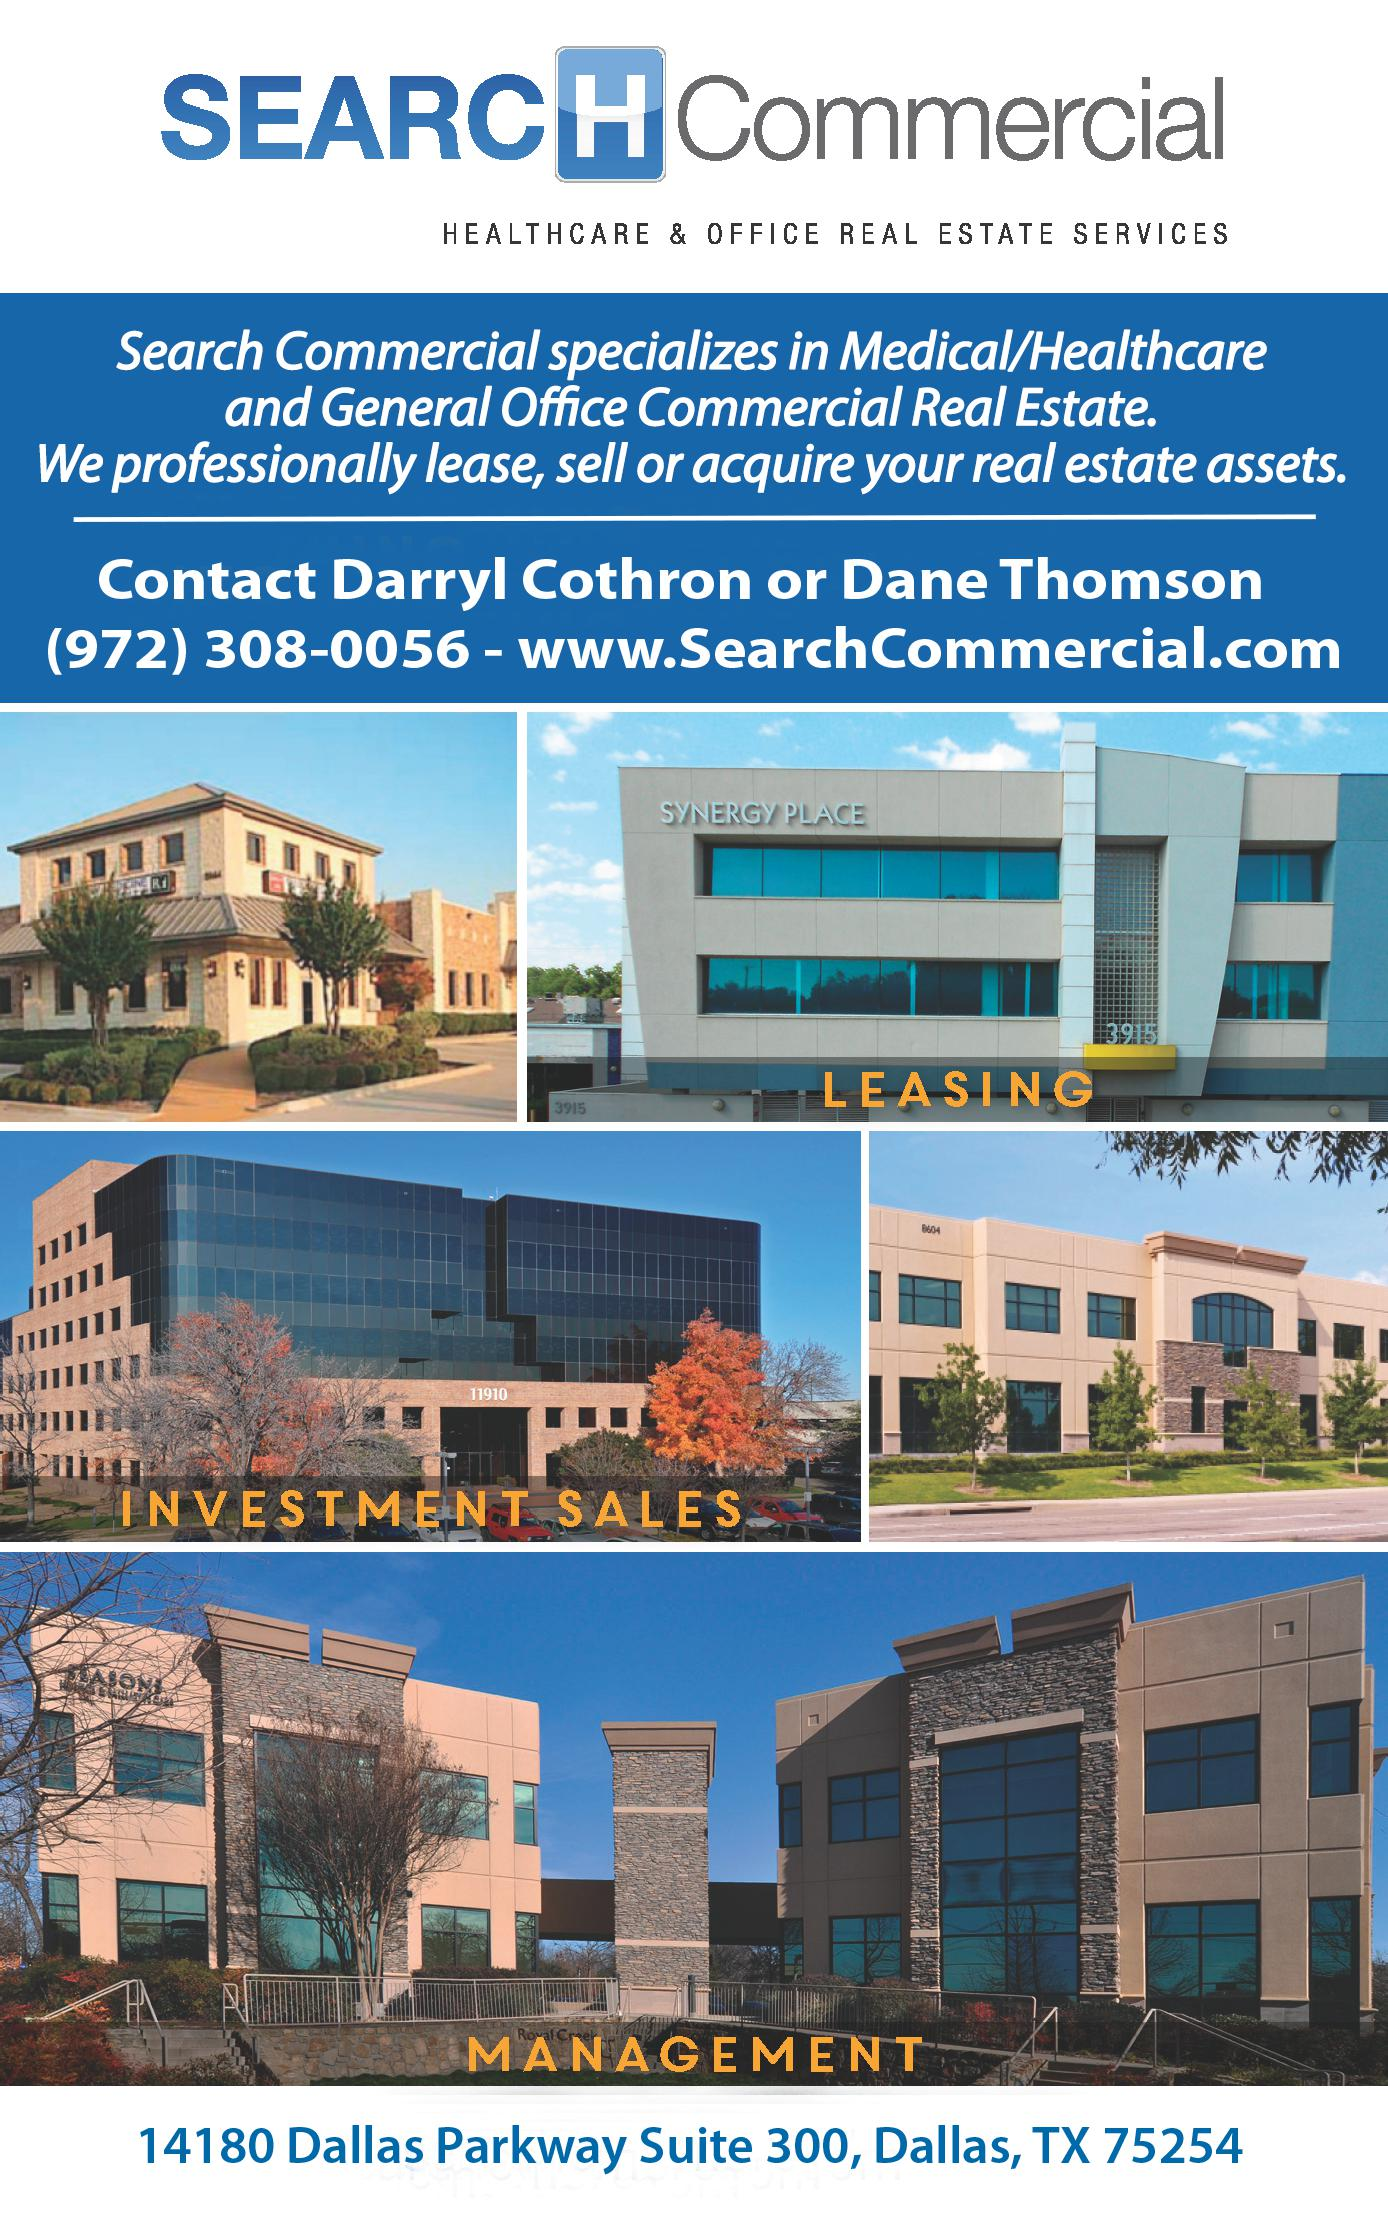 Search Commercial Healthcare and Office Real Estate